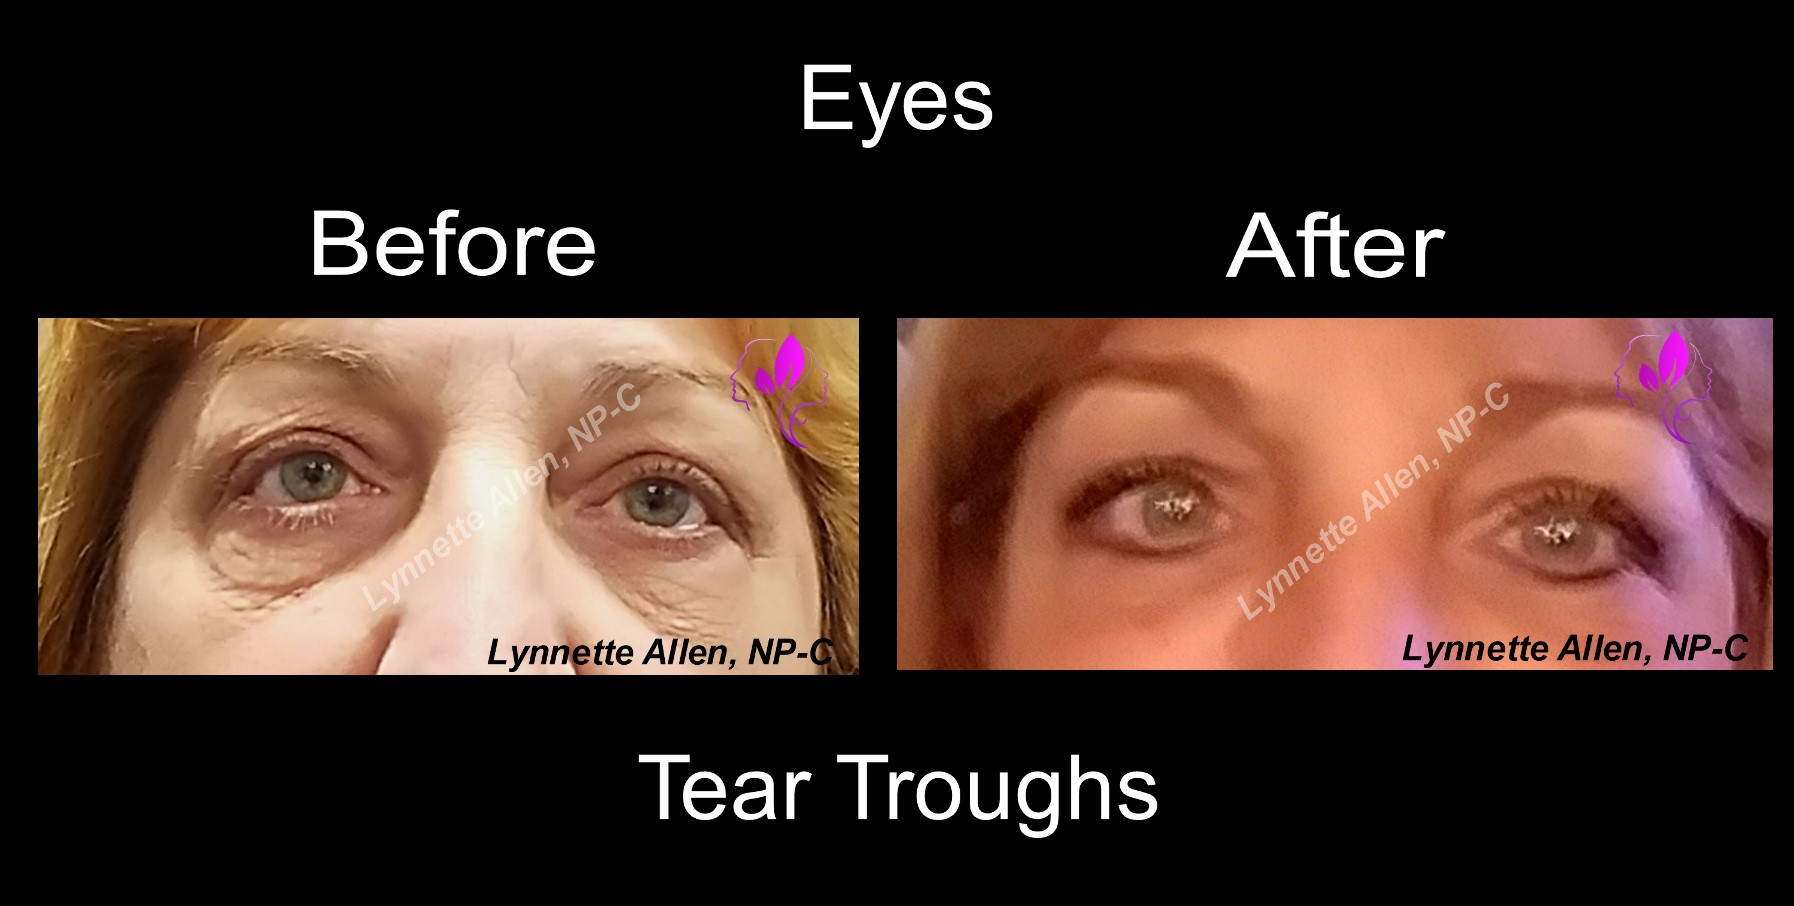 Eyes and Tears Troughs Before and Af